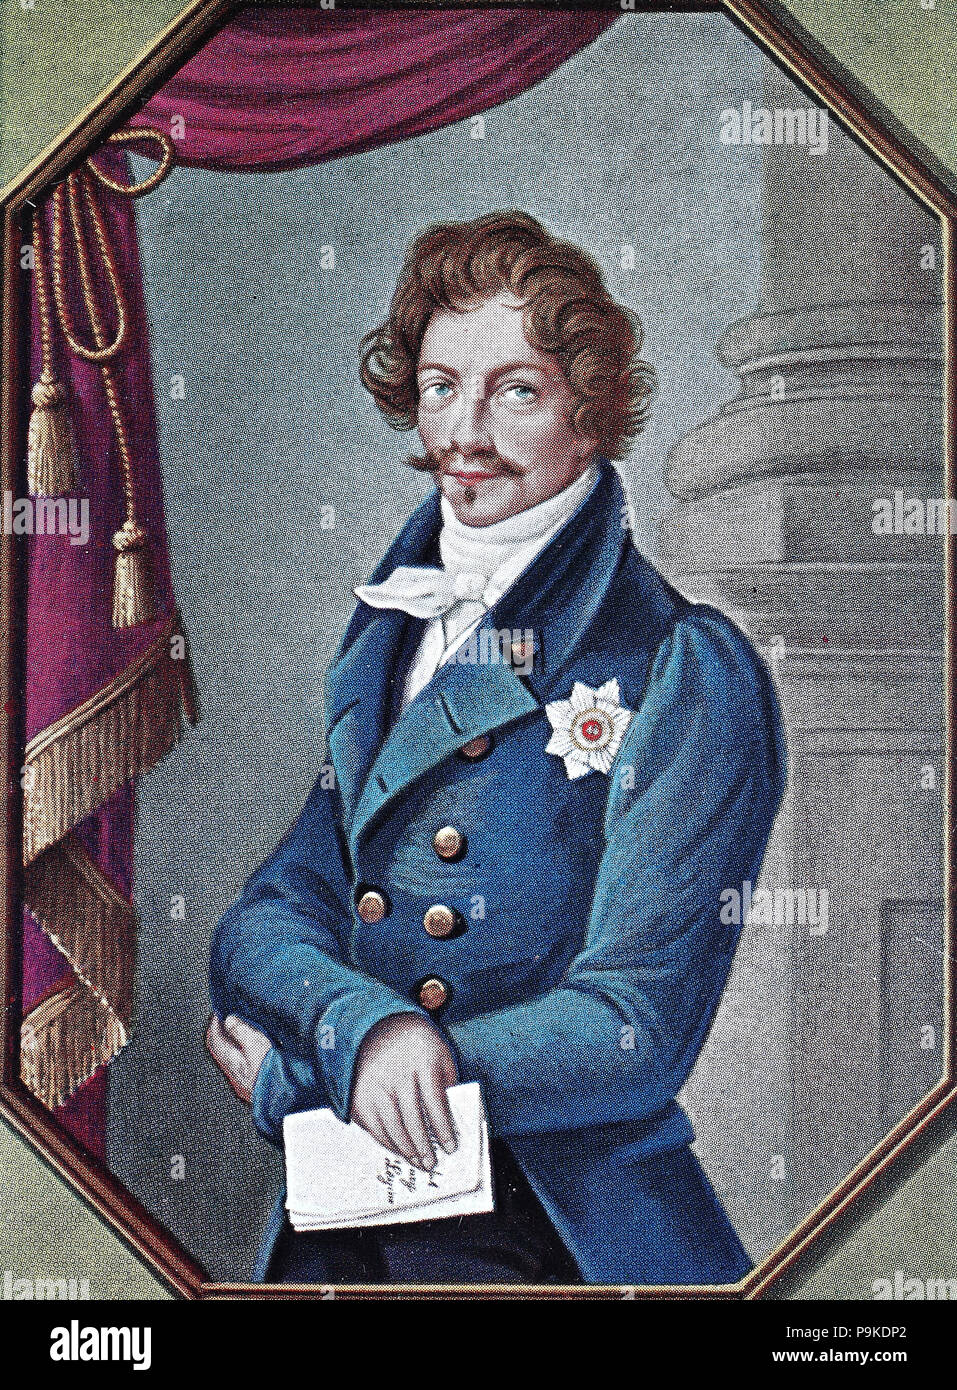 Ludwig I, also rendered in English as Louis I, 25 August 1786 – 29 February 1868, was king of Bavaria from 1825 until the 1848 revolutions in the German states. , digital improved reproduction of an original print from the year 1900 - Stock Image